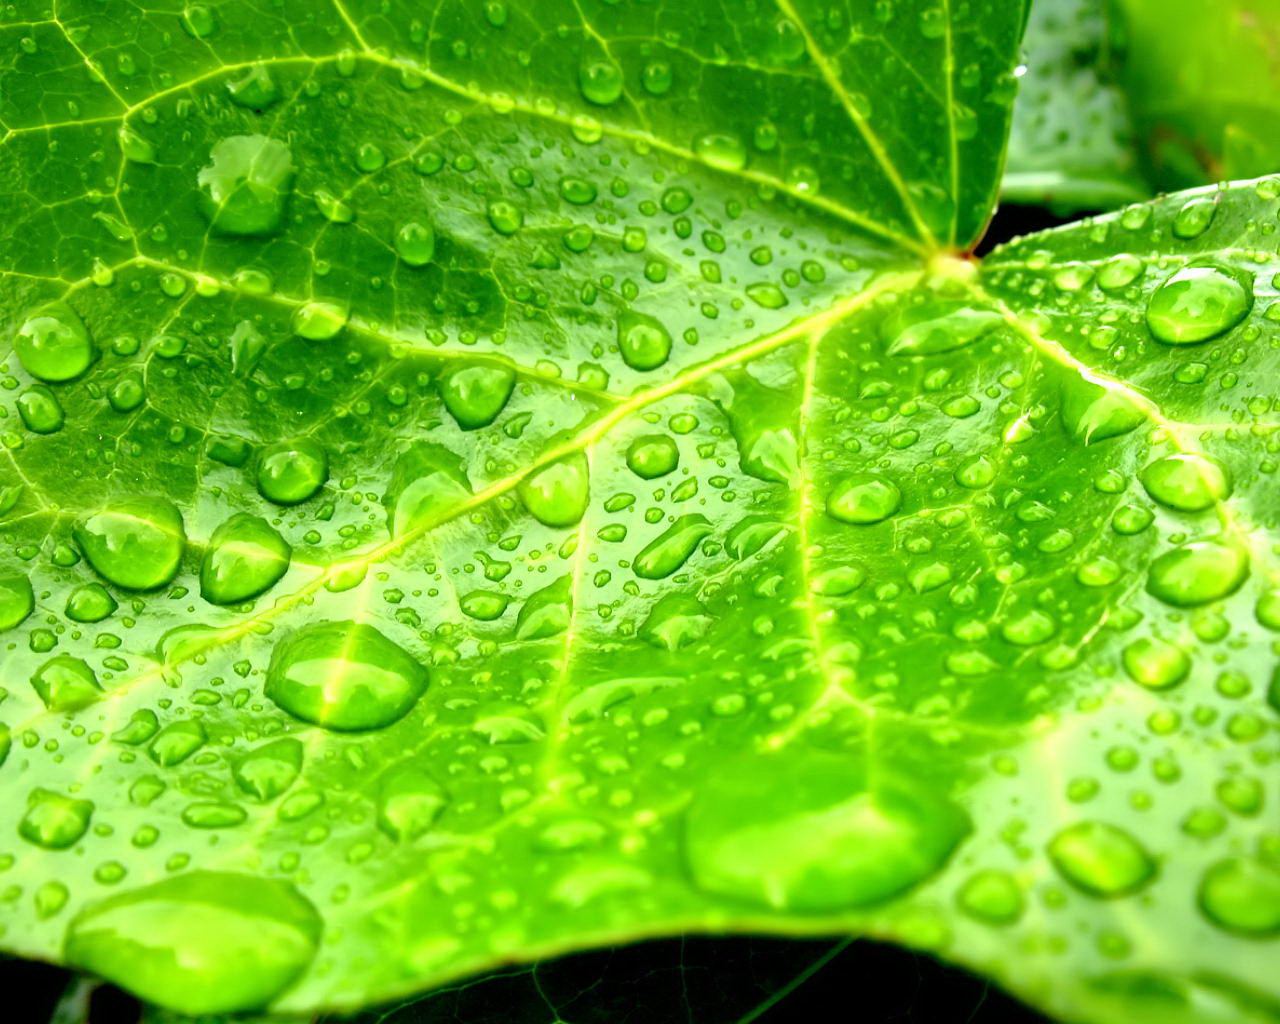 droplets on leaves 4k - photo #36